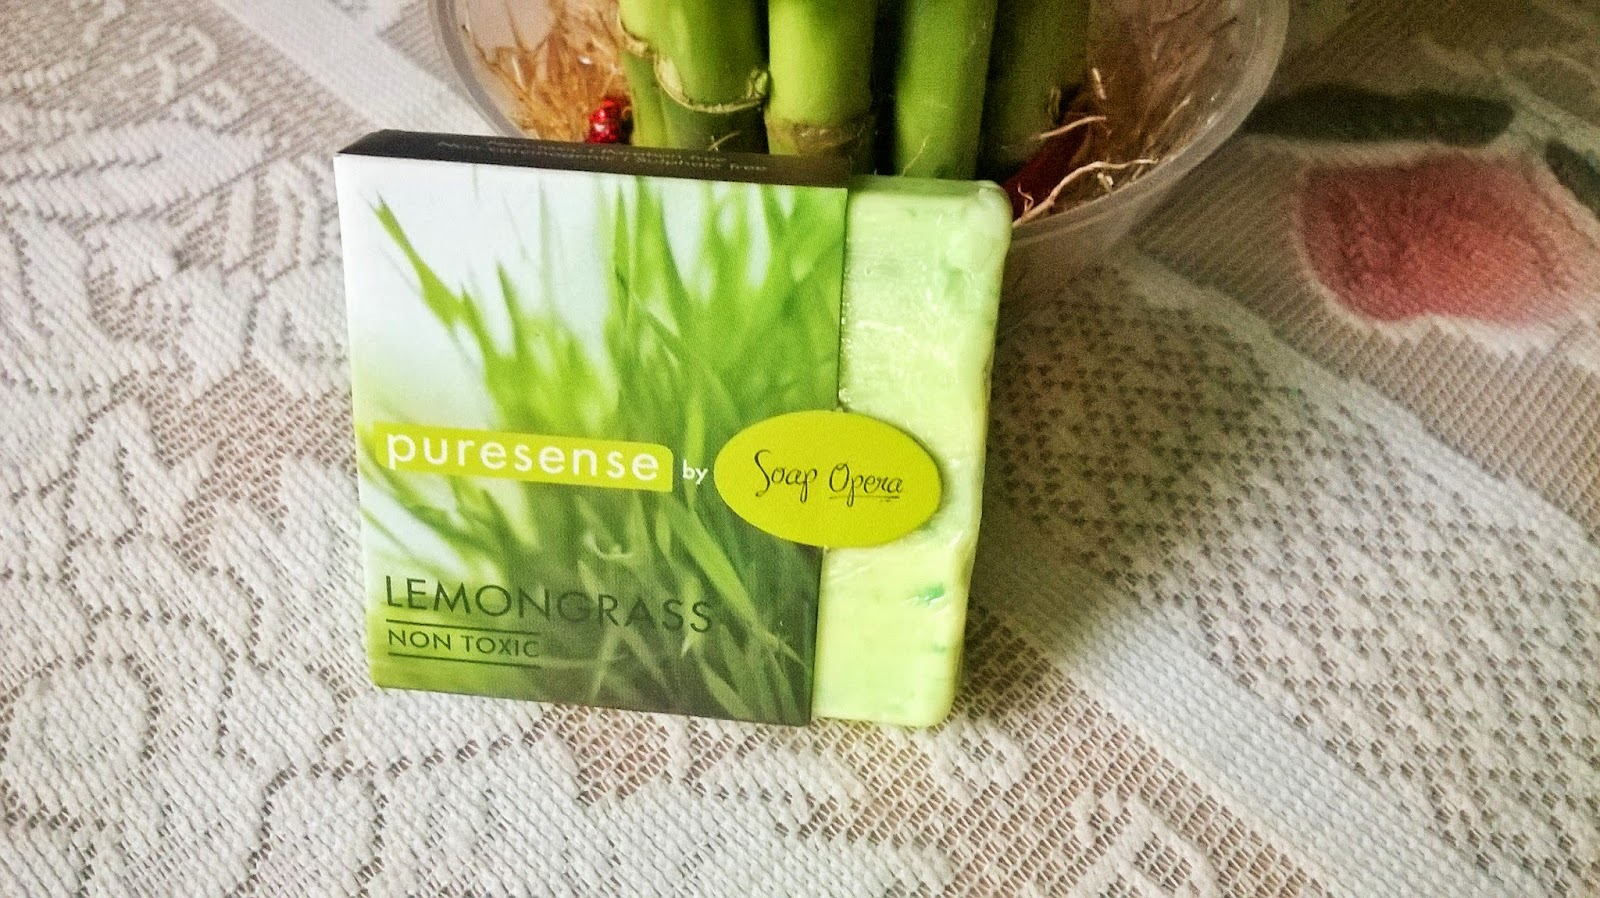 lemon grass research paper International food research journal 19(2): 569-575 bioactivity analysis of lemongrass (cymbopogan citratus) essential oil of lemongrass (both leaves and stalks) are fixed at 200 g for each load after drying, the lemongrass was.